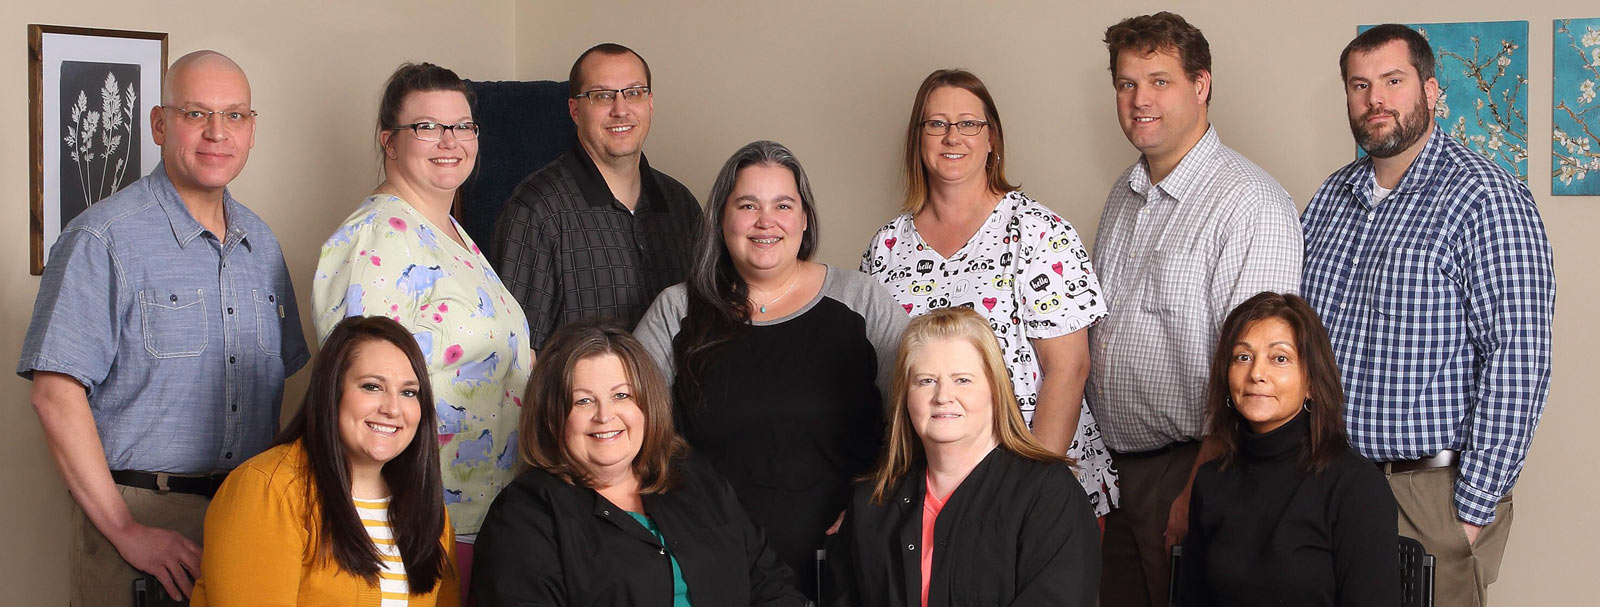 rocky mountain clinical research team.